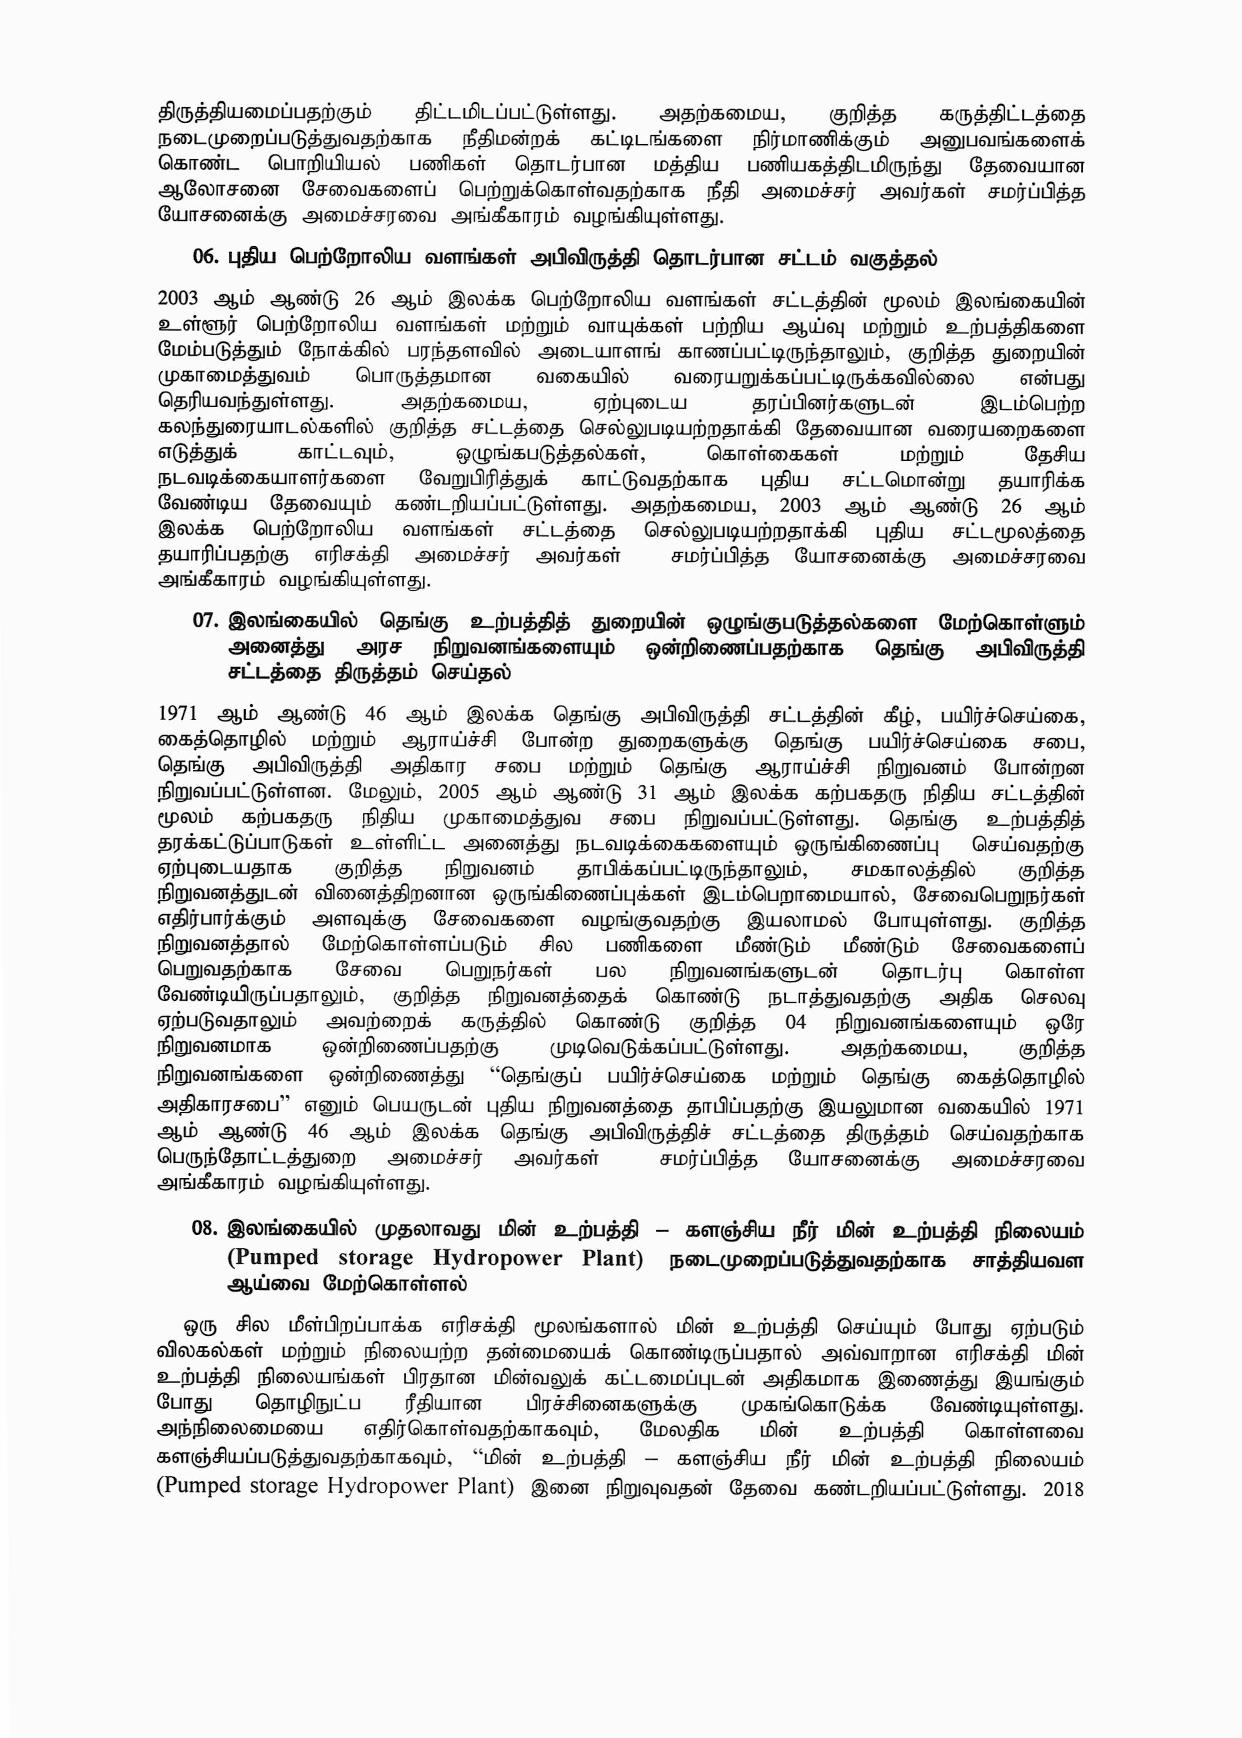 Cabinet Decision on 25.01.2021 Tamil page 003